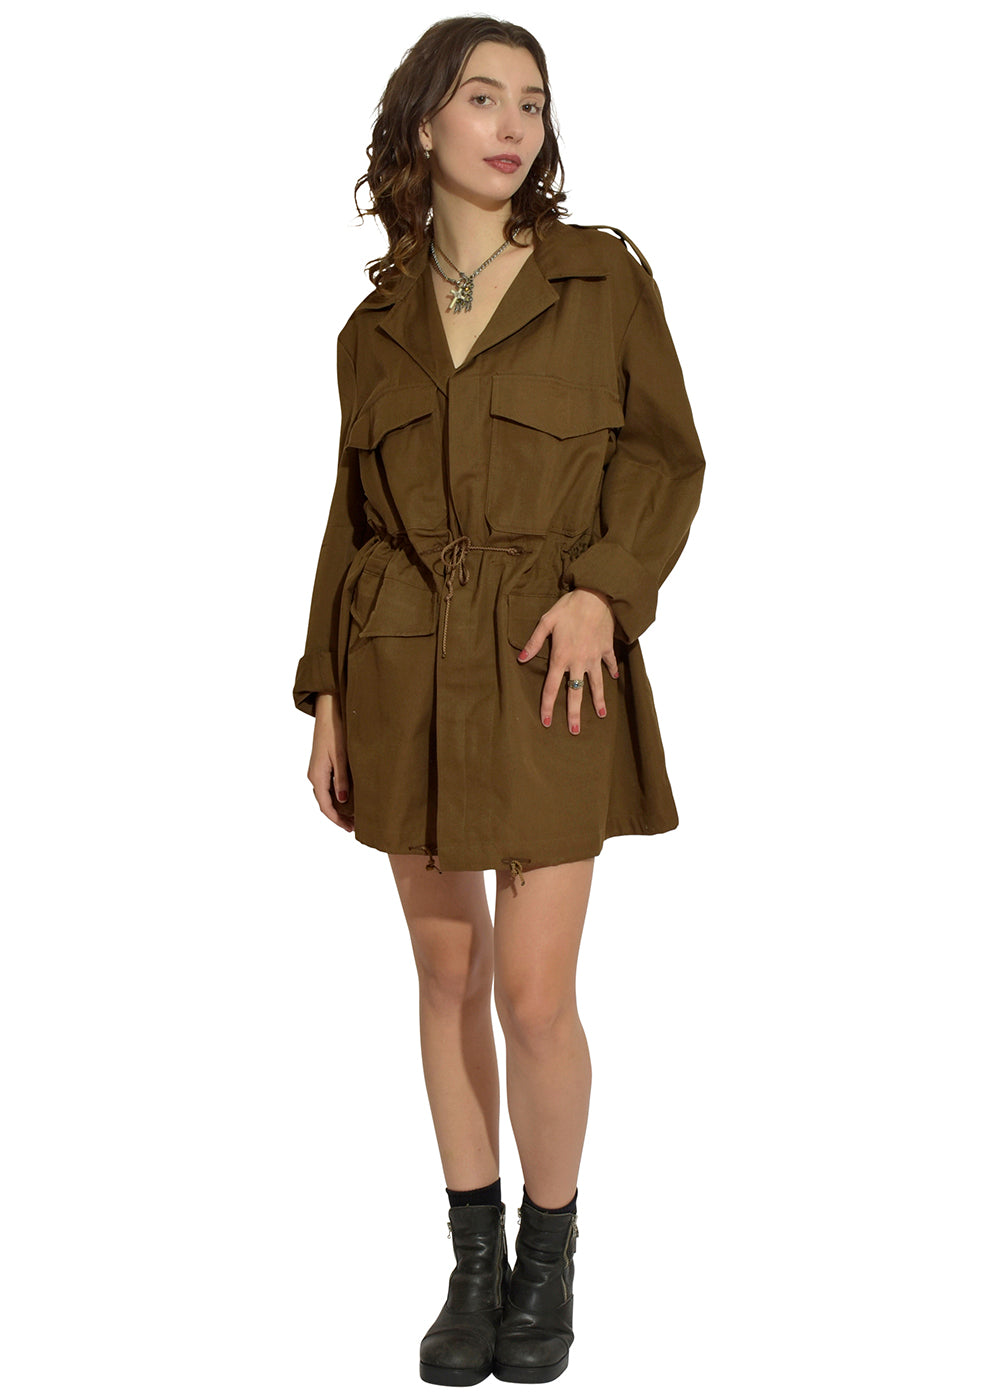 Swampi Brown Trench Dress